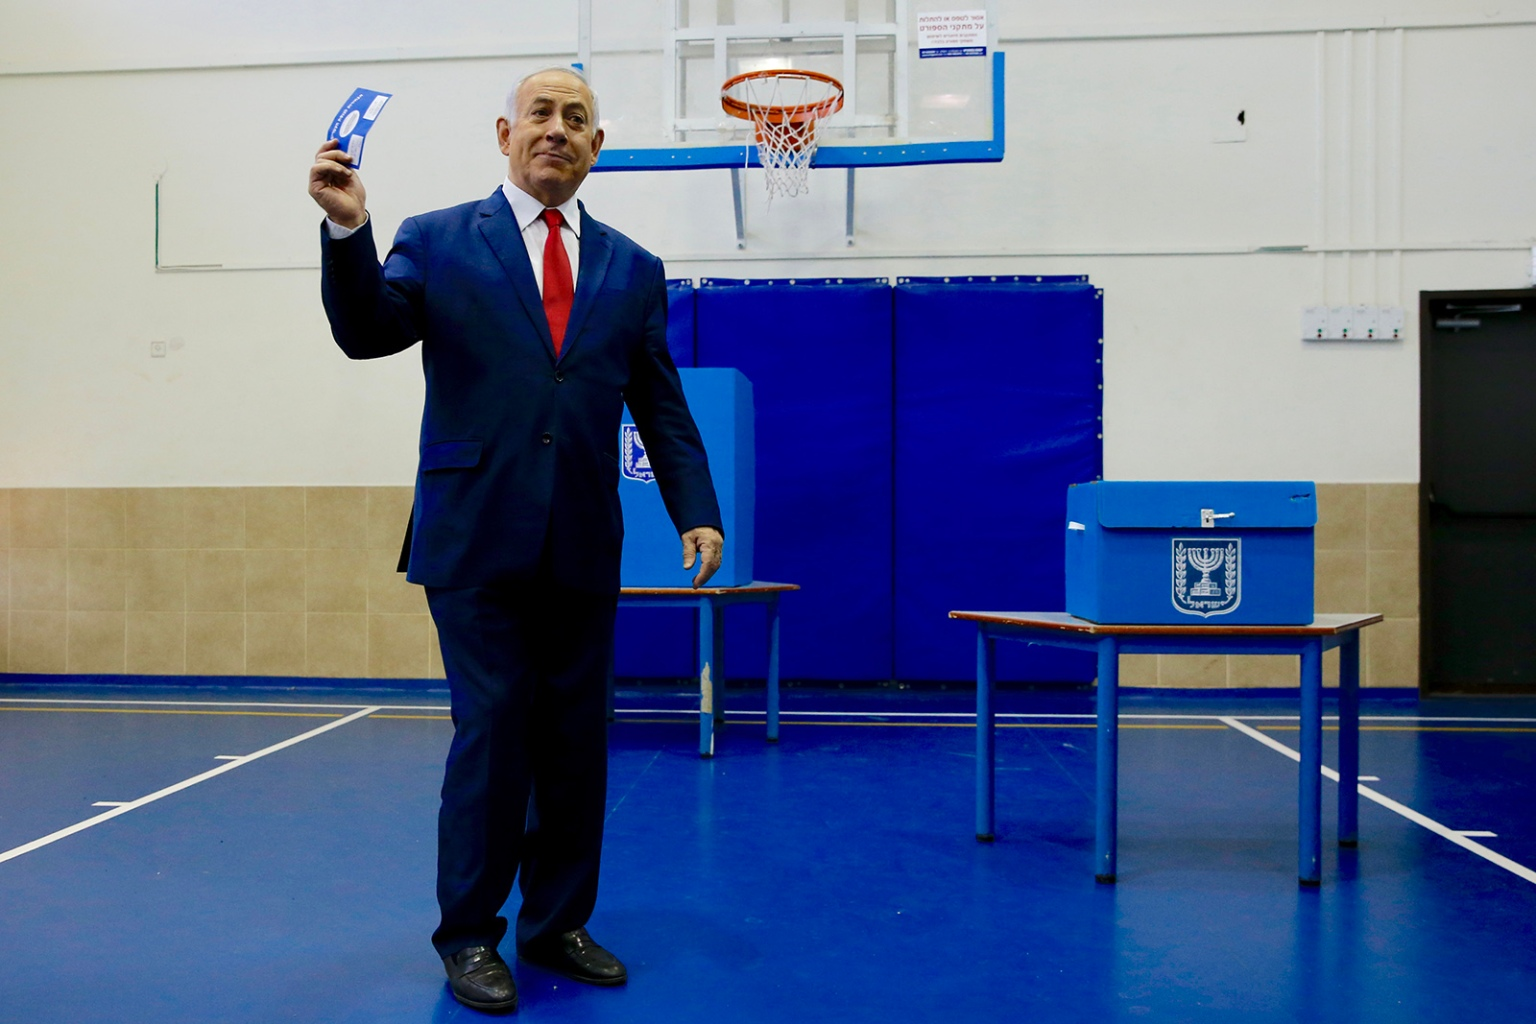 Israeli Prime Minister Benjamin Netanyahu casts his vote during Israel's parliamentary elections in Jerusalem on April 9. ARIEL SCHALIT/AFP/Getty Images